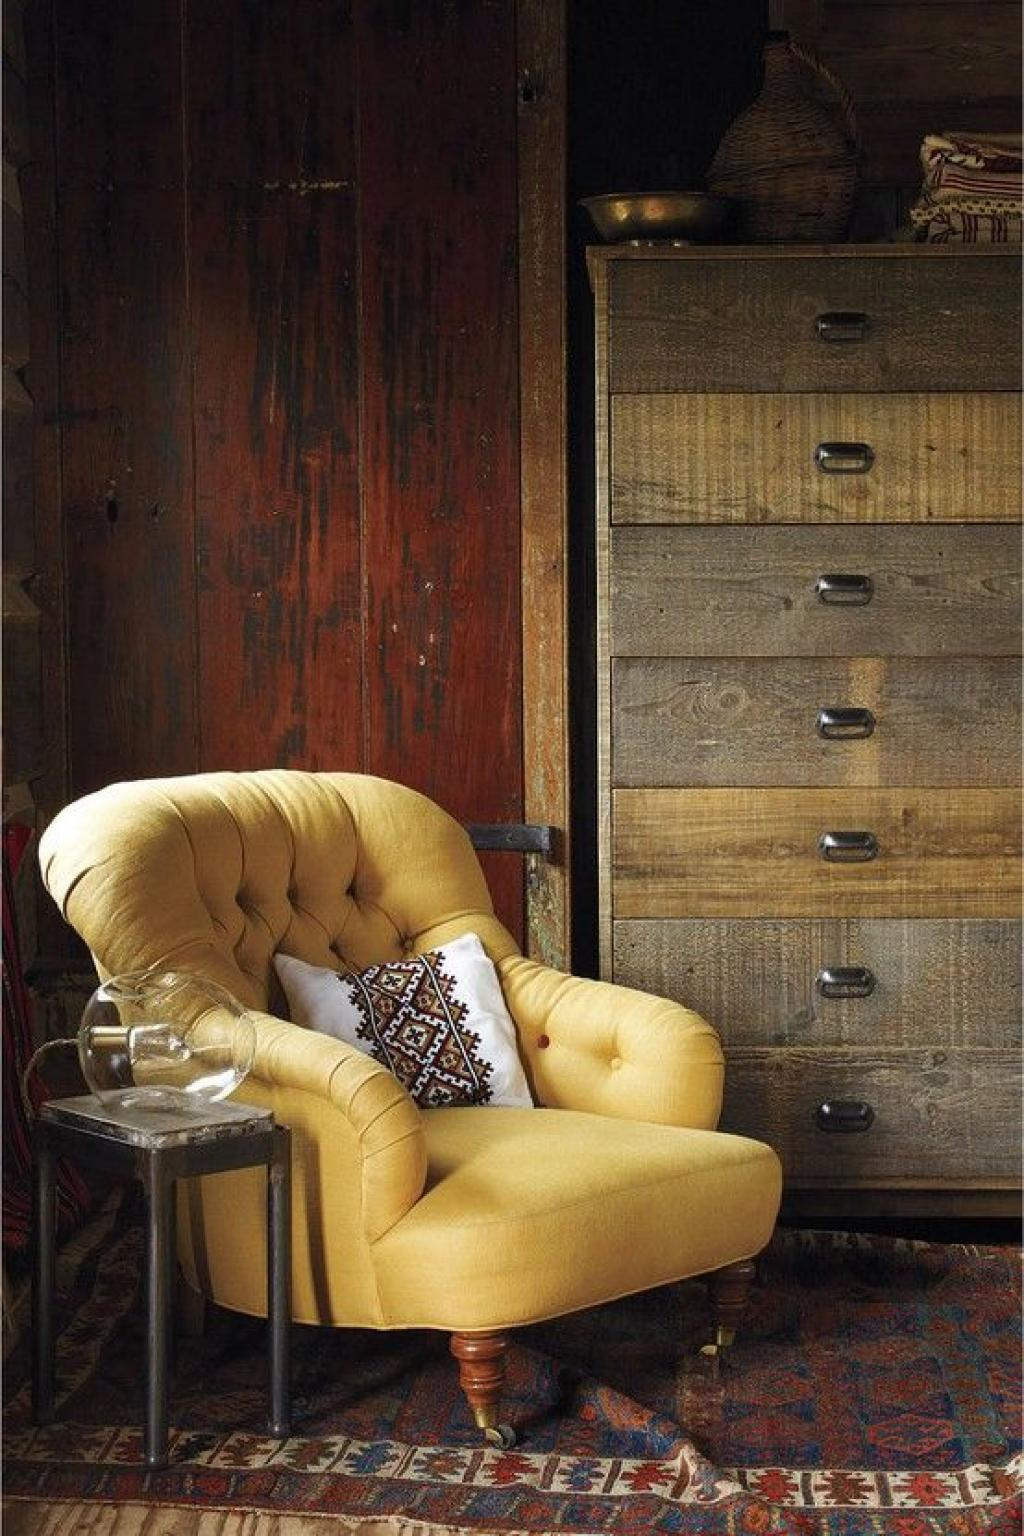 Classic Yellow Tufted Reading Chair with Vintage Room